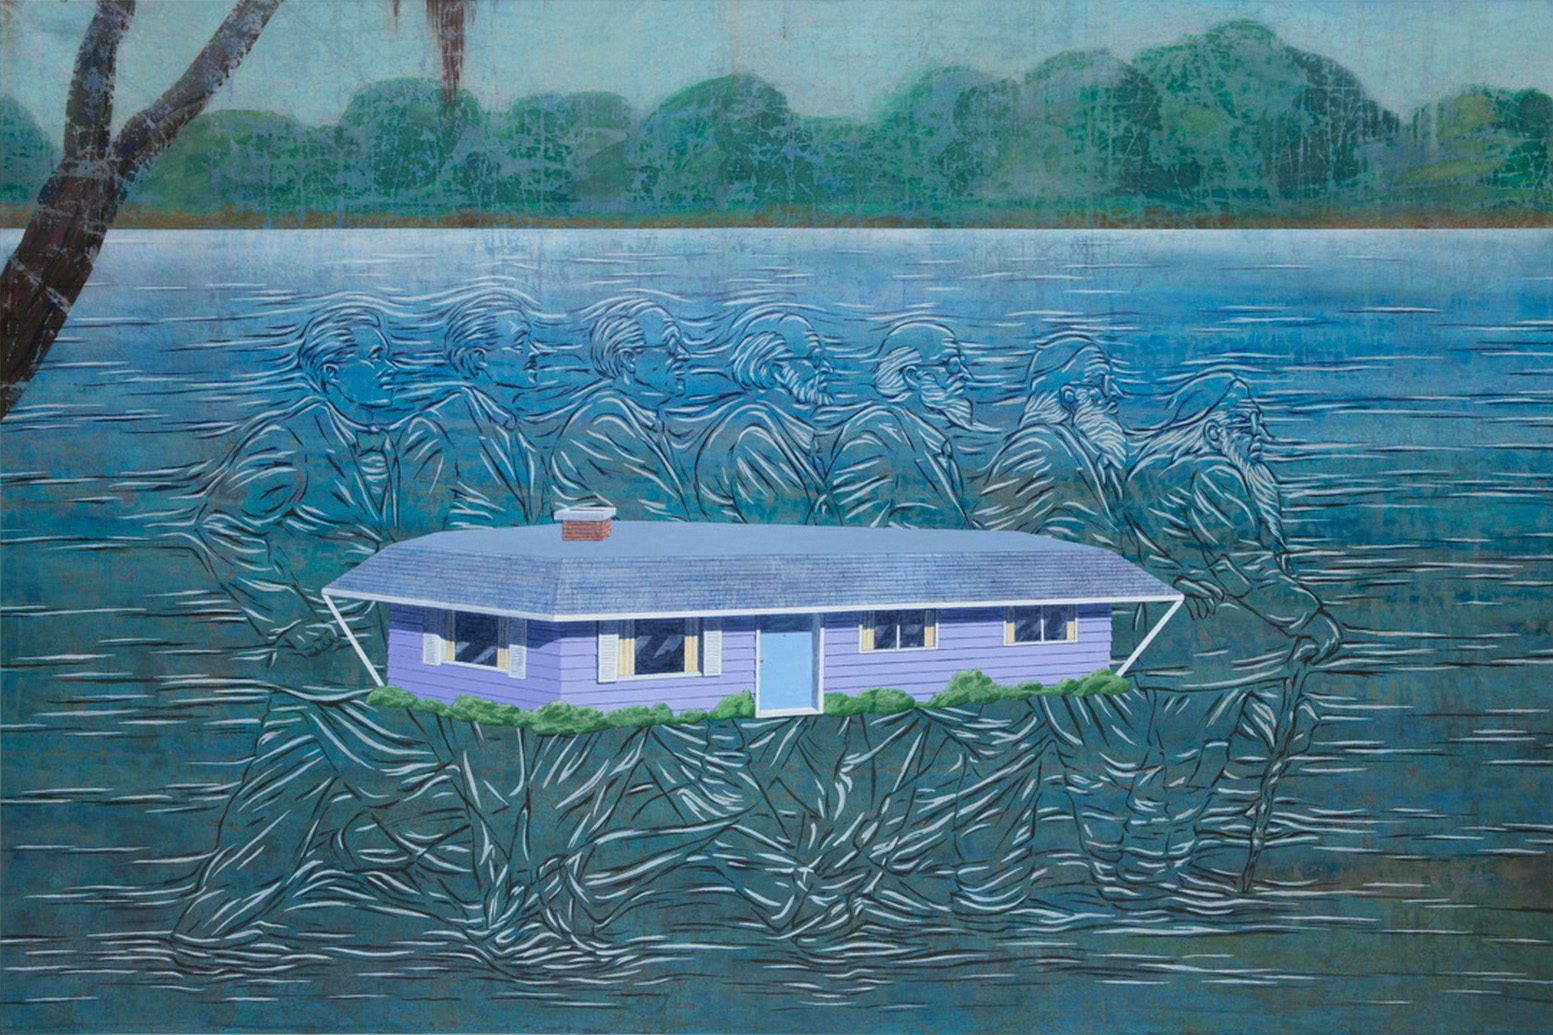 Jim Shaw, <em>The House in Mississippi</em>, 2013. Acrylic on muslin, 72 x 108 inches. Courtesy of the artist and Blum & Poe, Los Angeles.